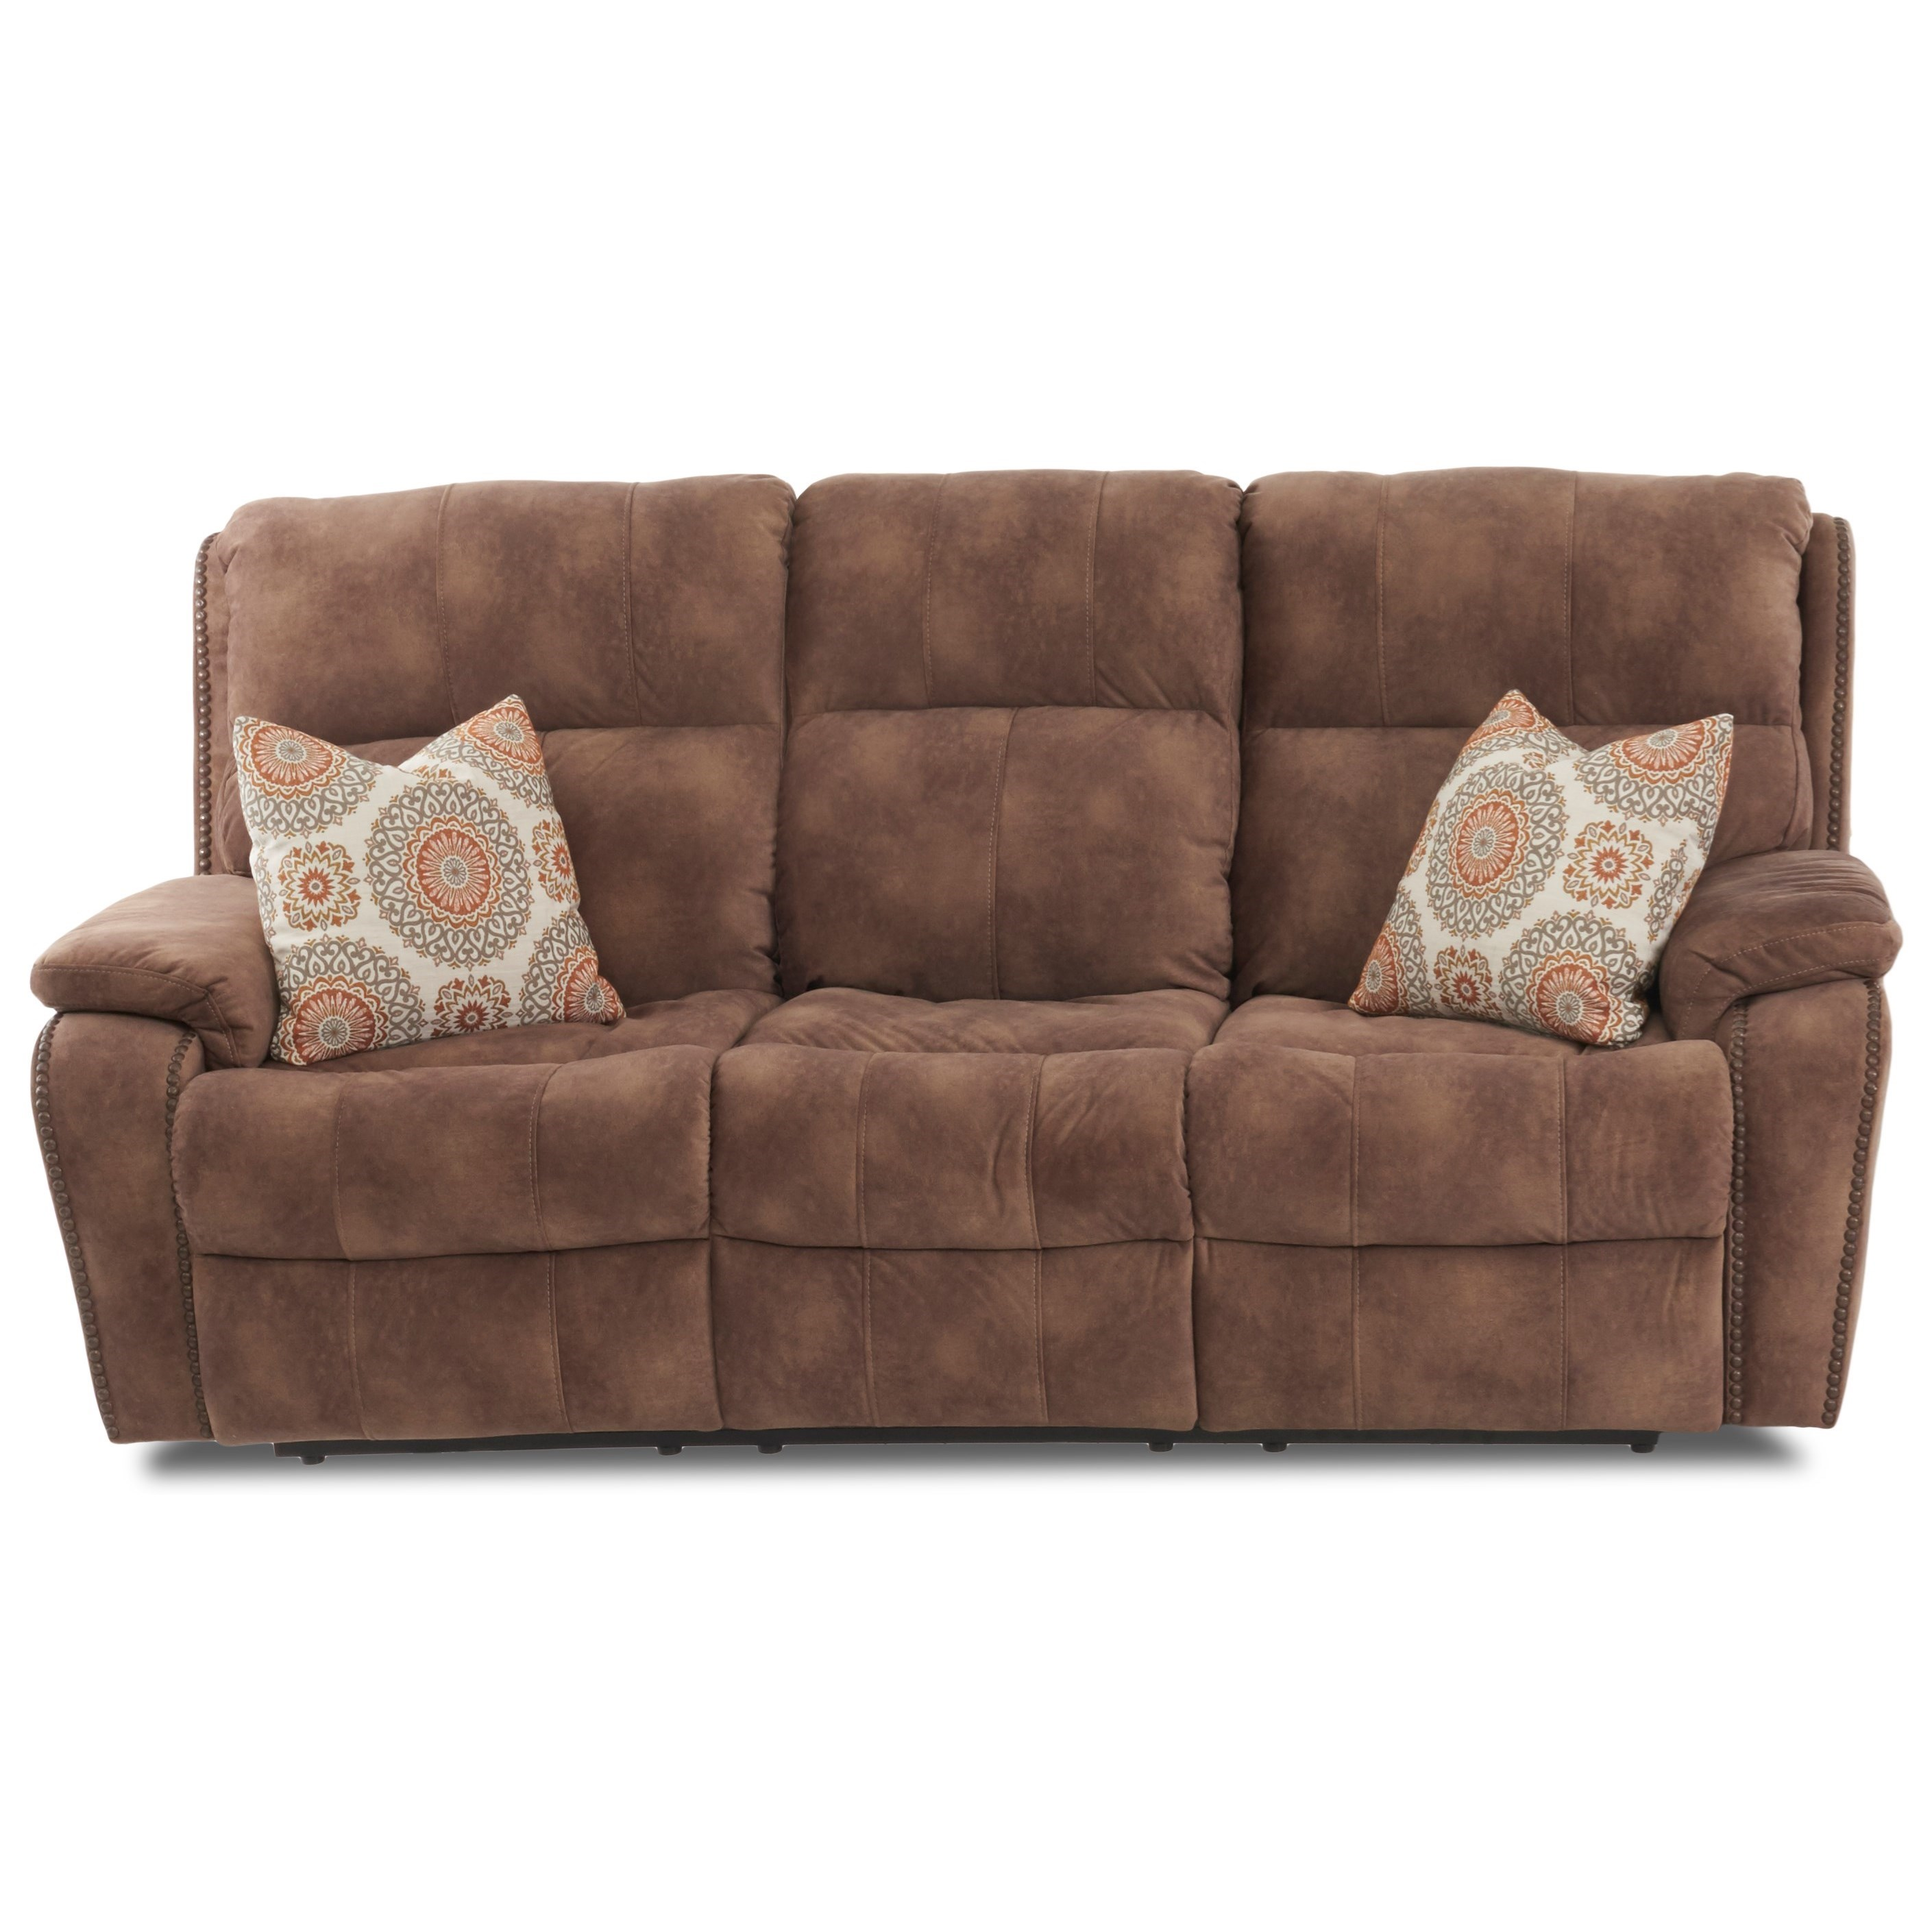 Pwr Recline Sofa w/ Nails w/ Pwr Head w/ Pil